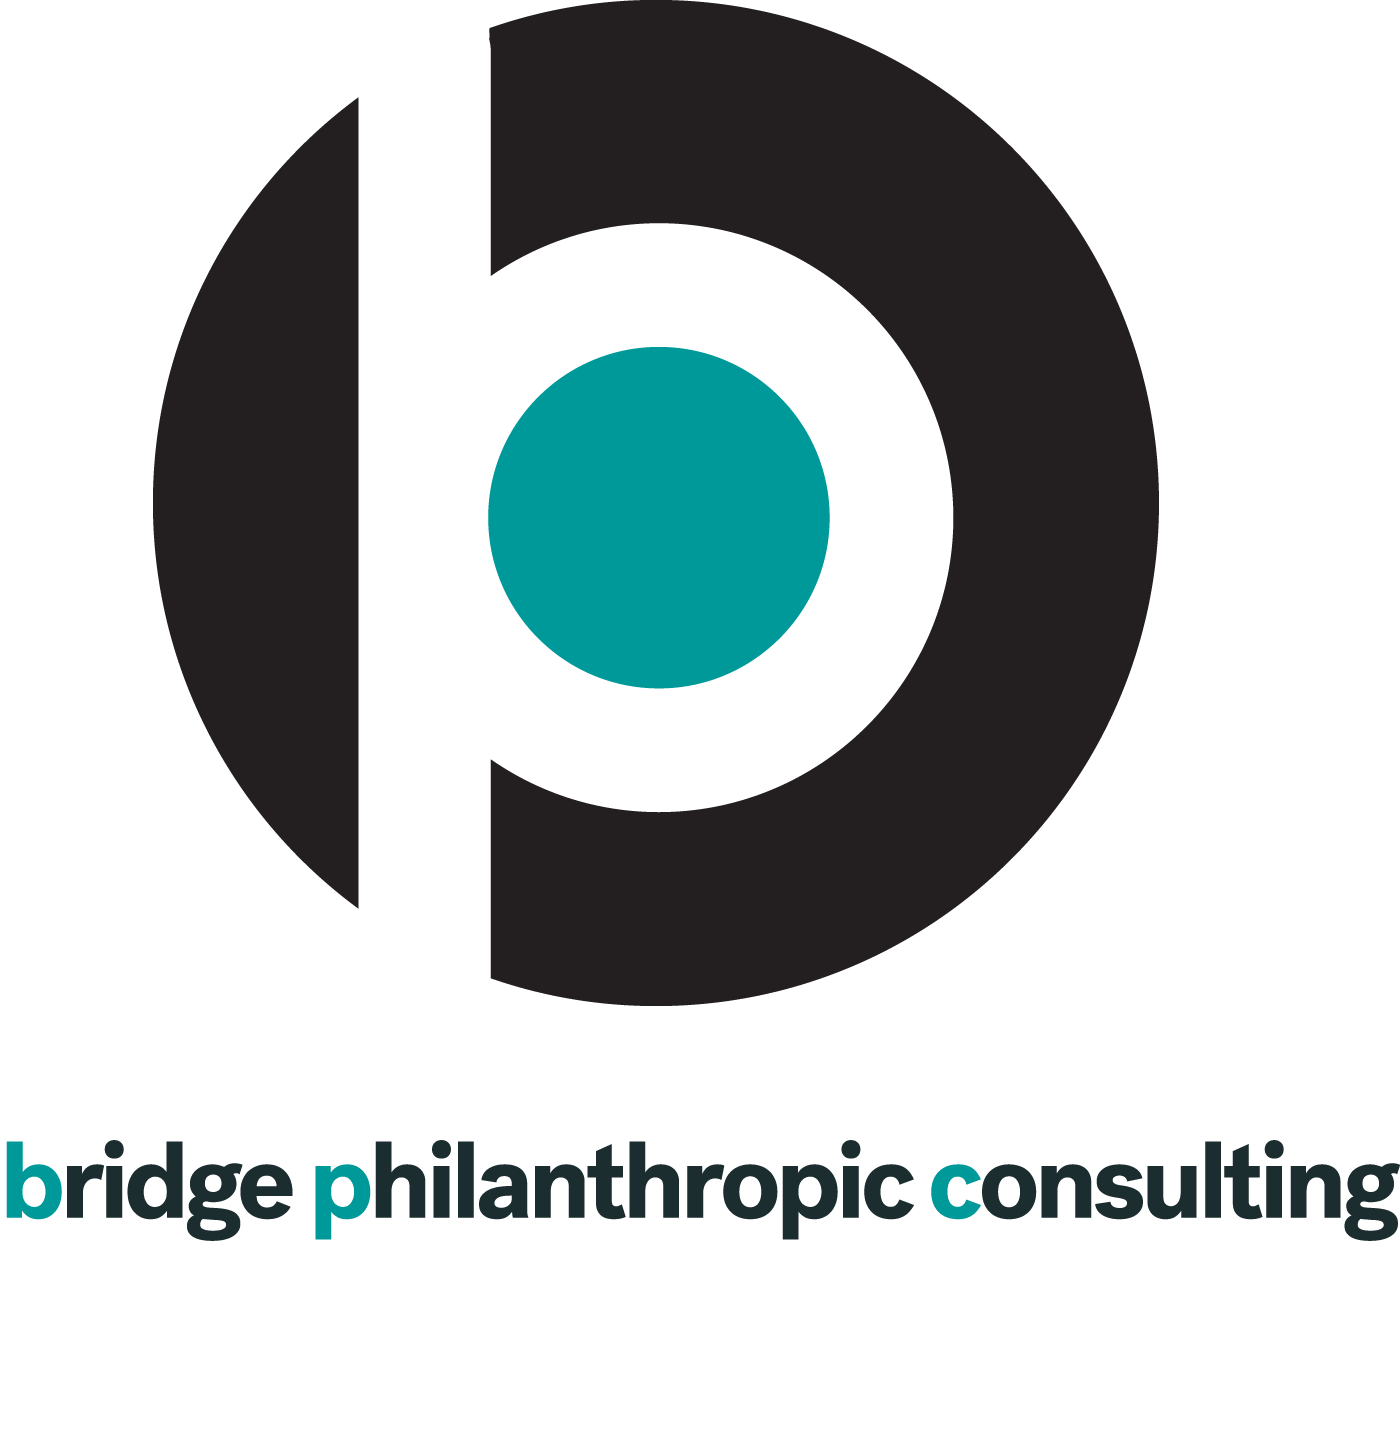 Bridge Philanthropic Consulting,LLC©